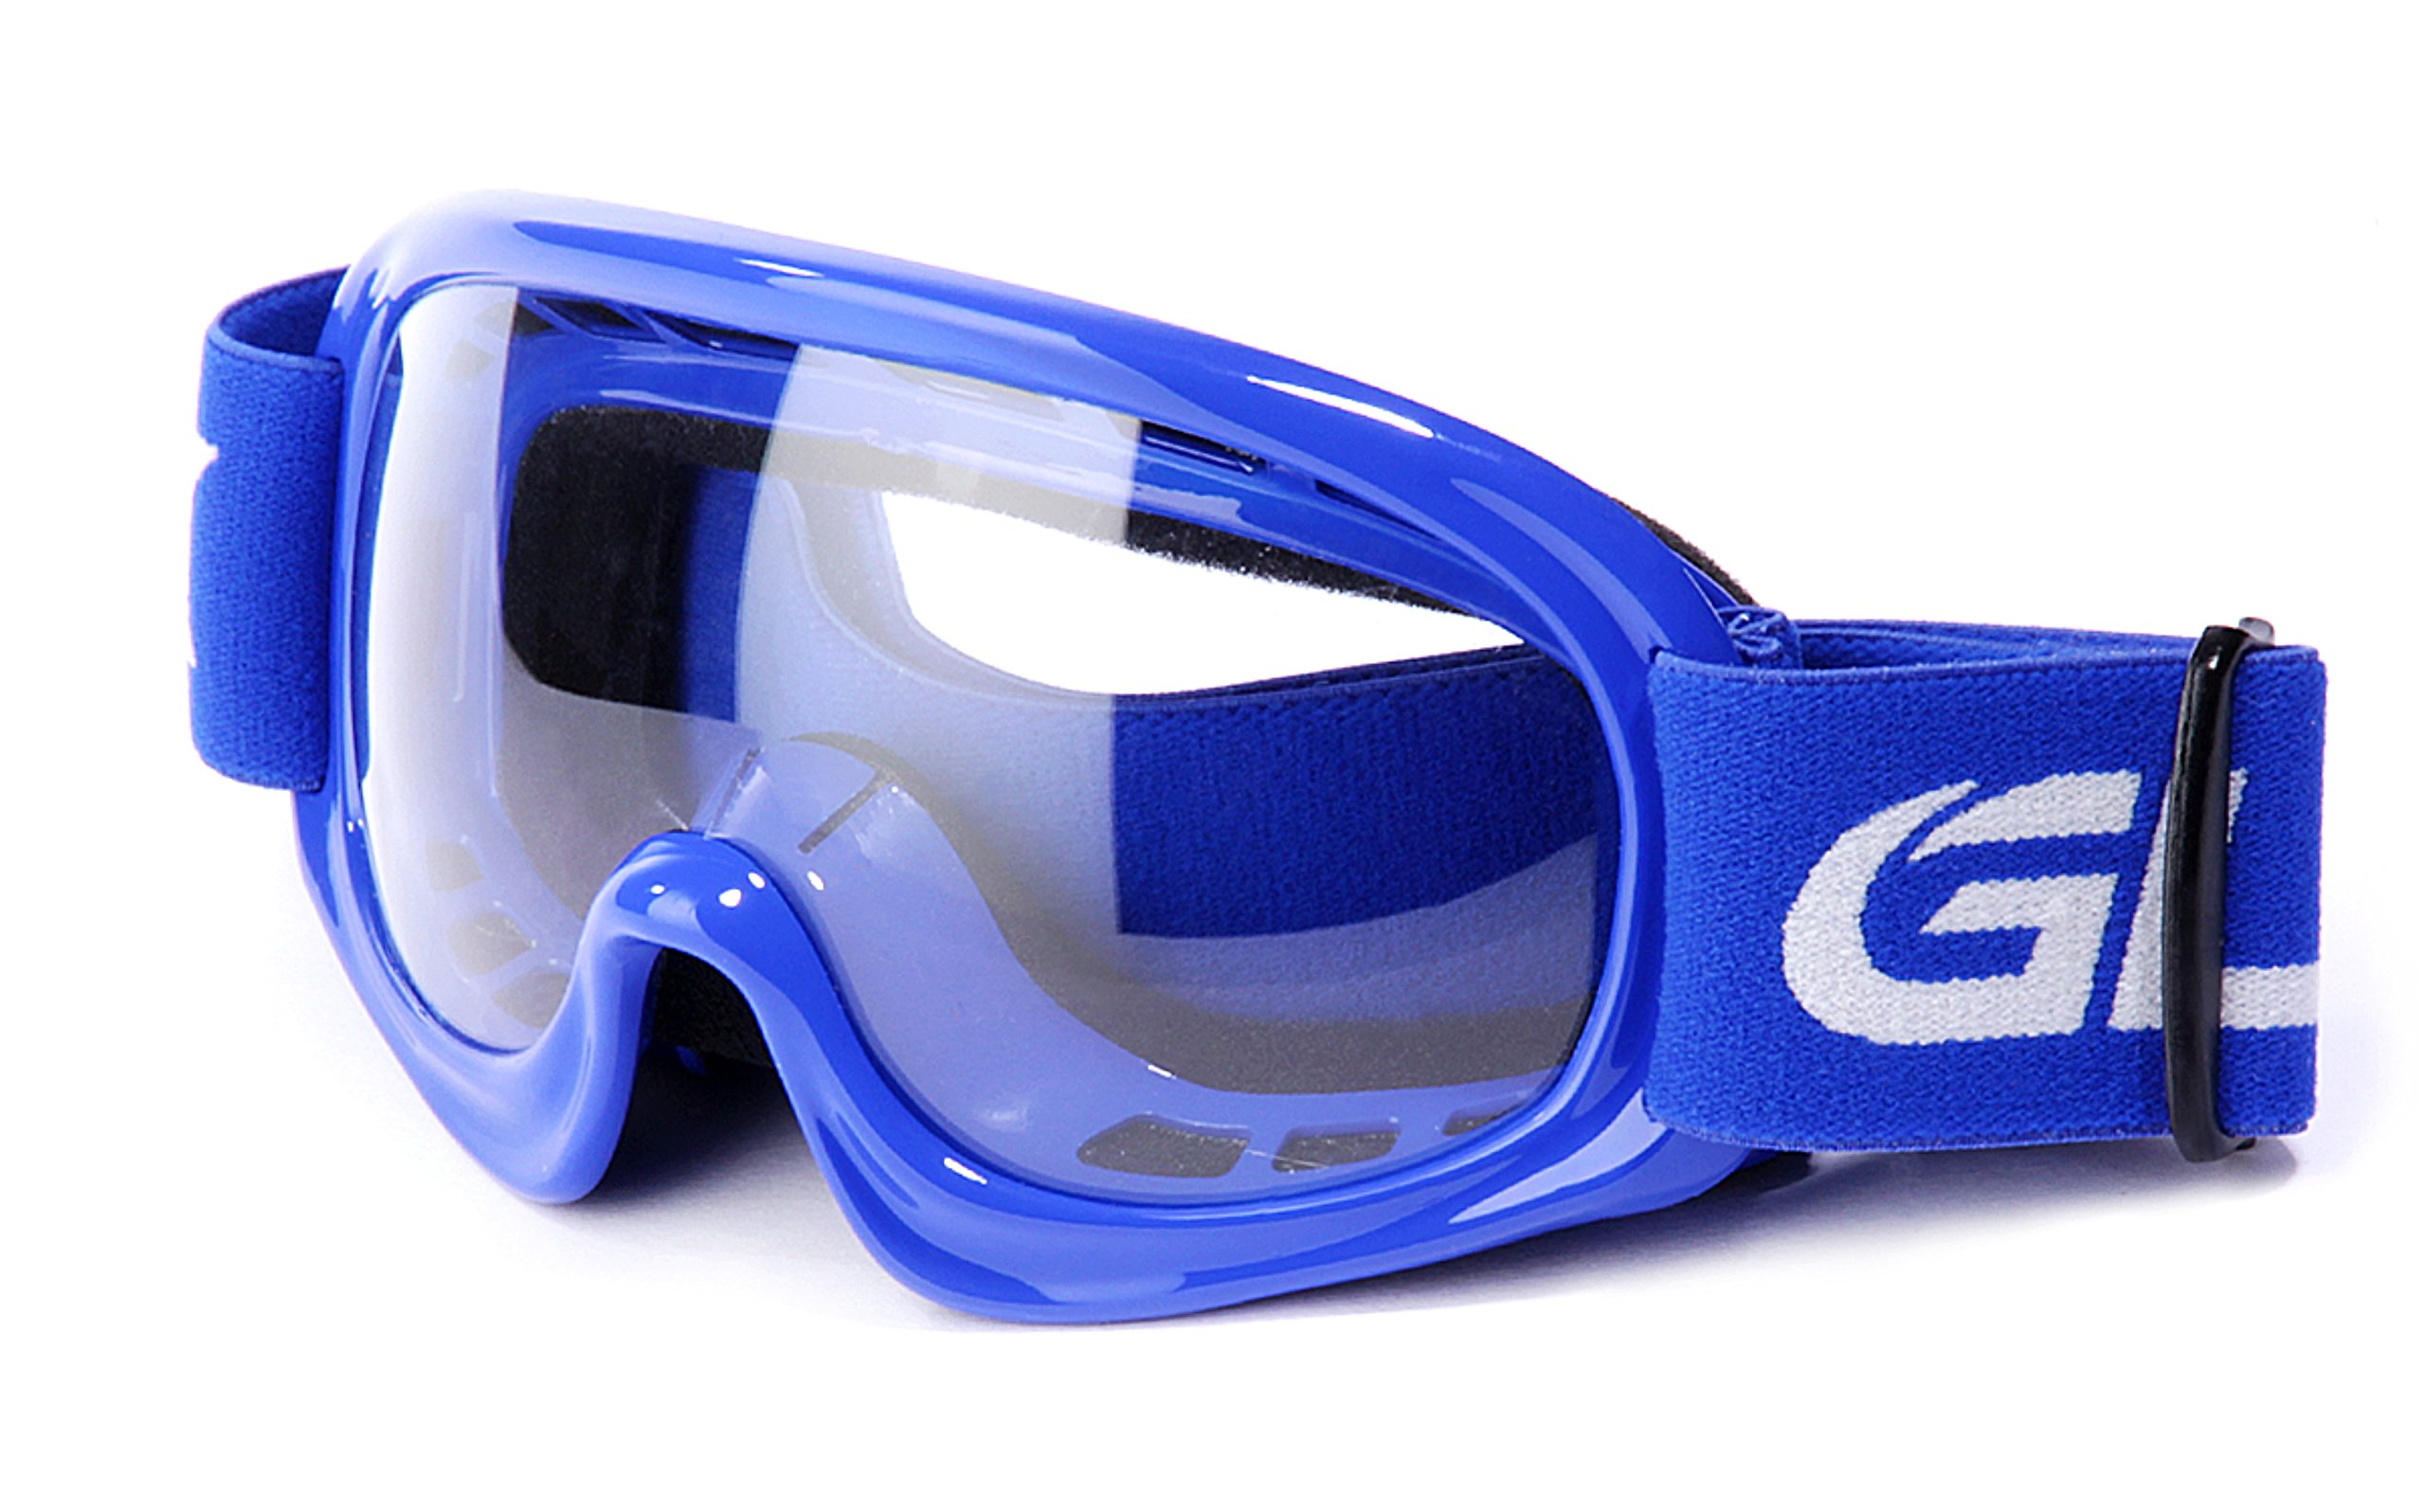 GLX Youth Kids Sports Motocross Airsoft Paintball Dirt Bike Motorcycle Off Road Racing ATV Goggles Anti-Fog (Blue)